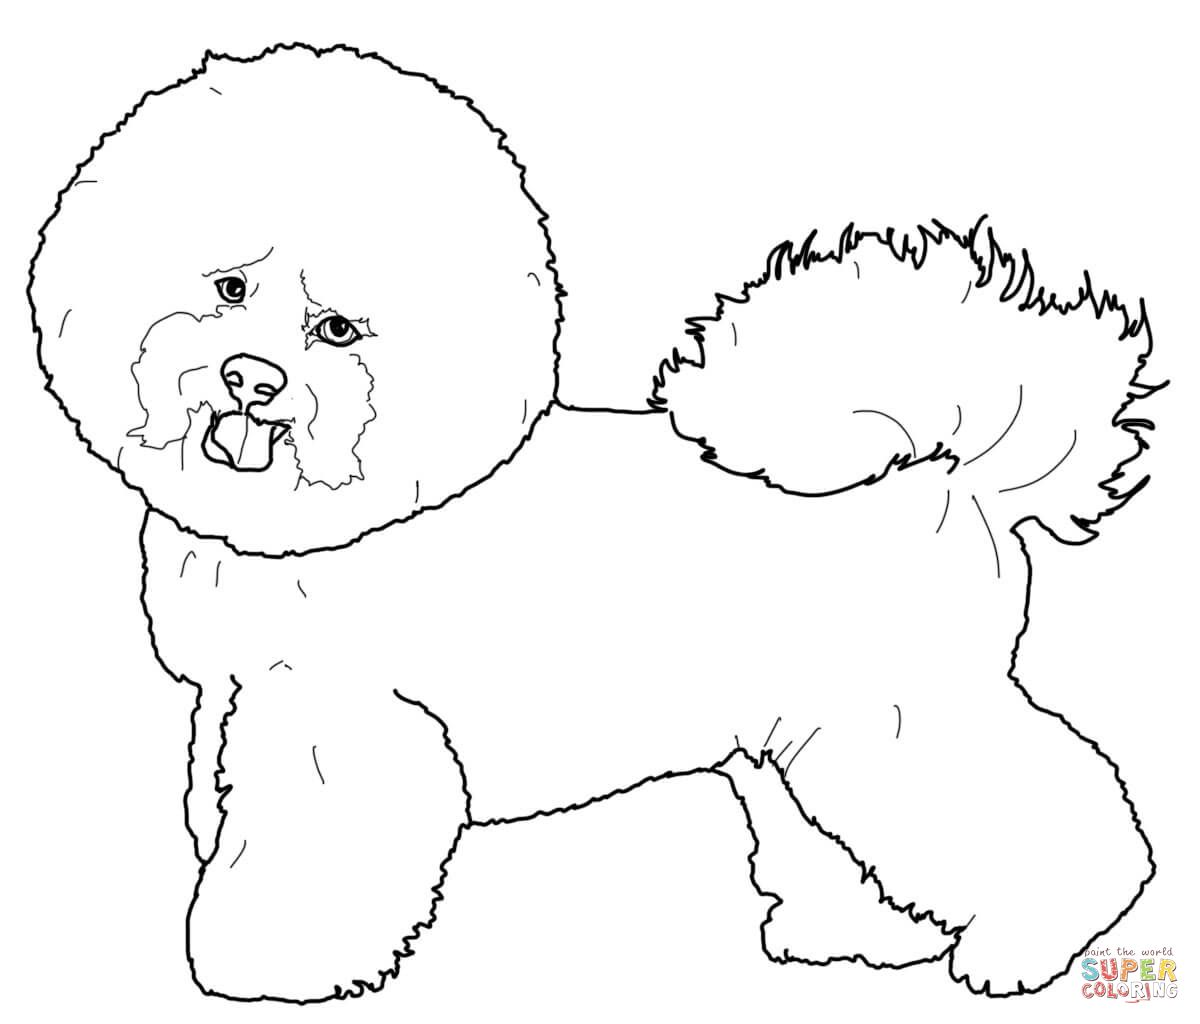 Bichon Frise Dog Coloring Page Puppy Coloring Pages Dog Coloring Book [ 1024 x 1200 Pixel ]